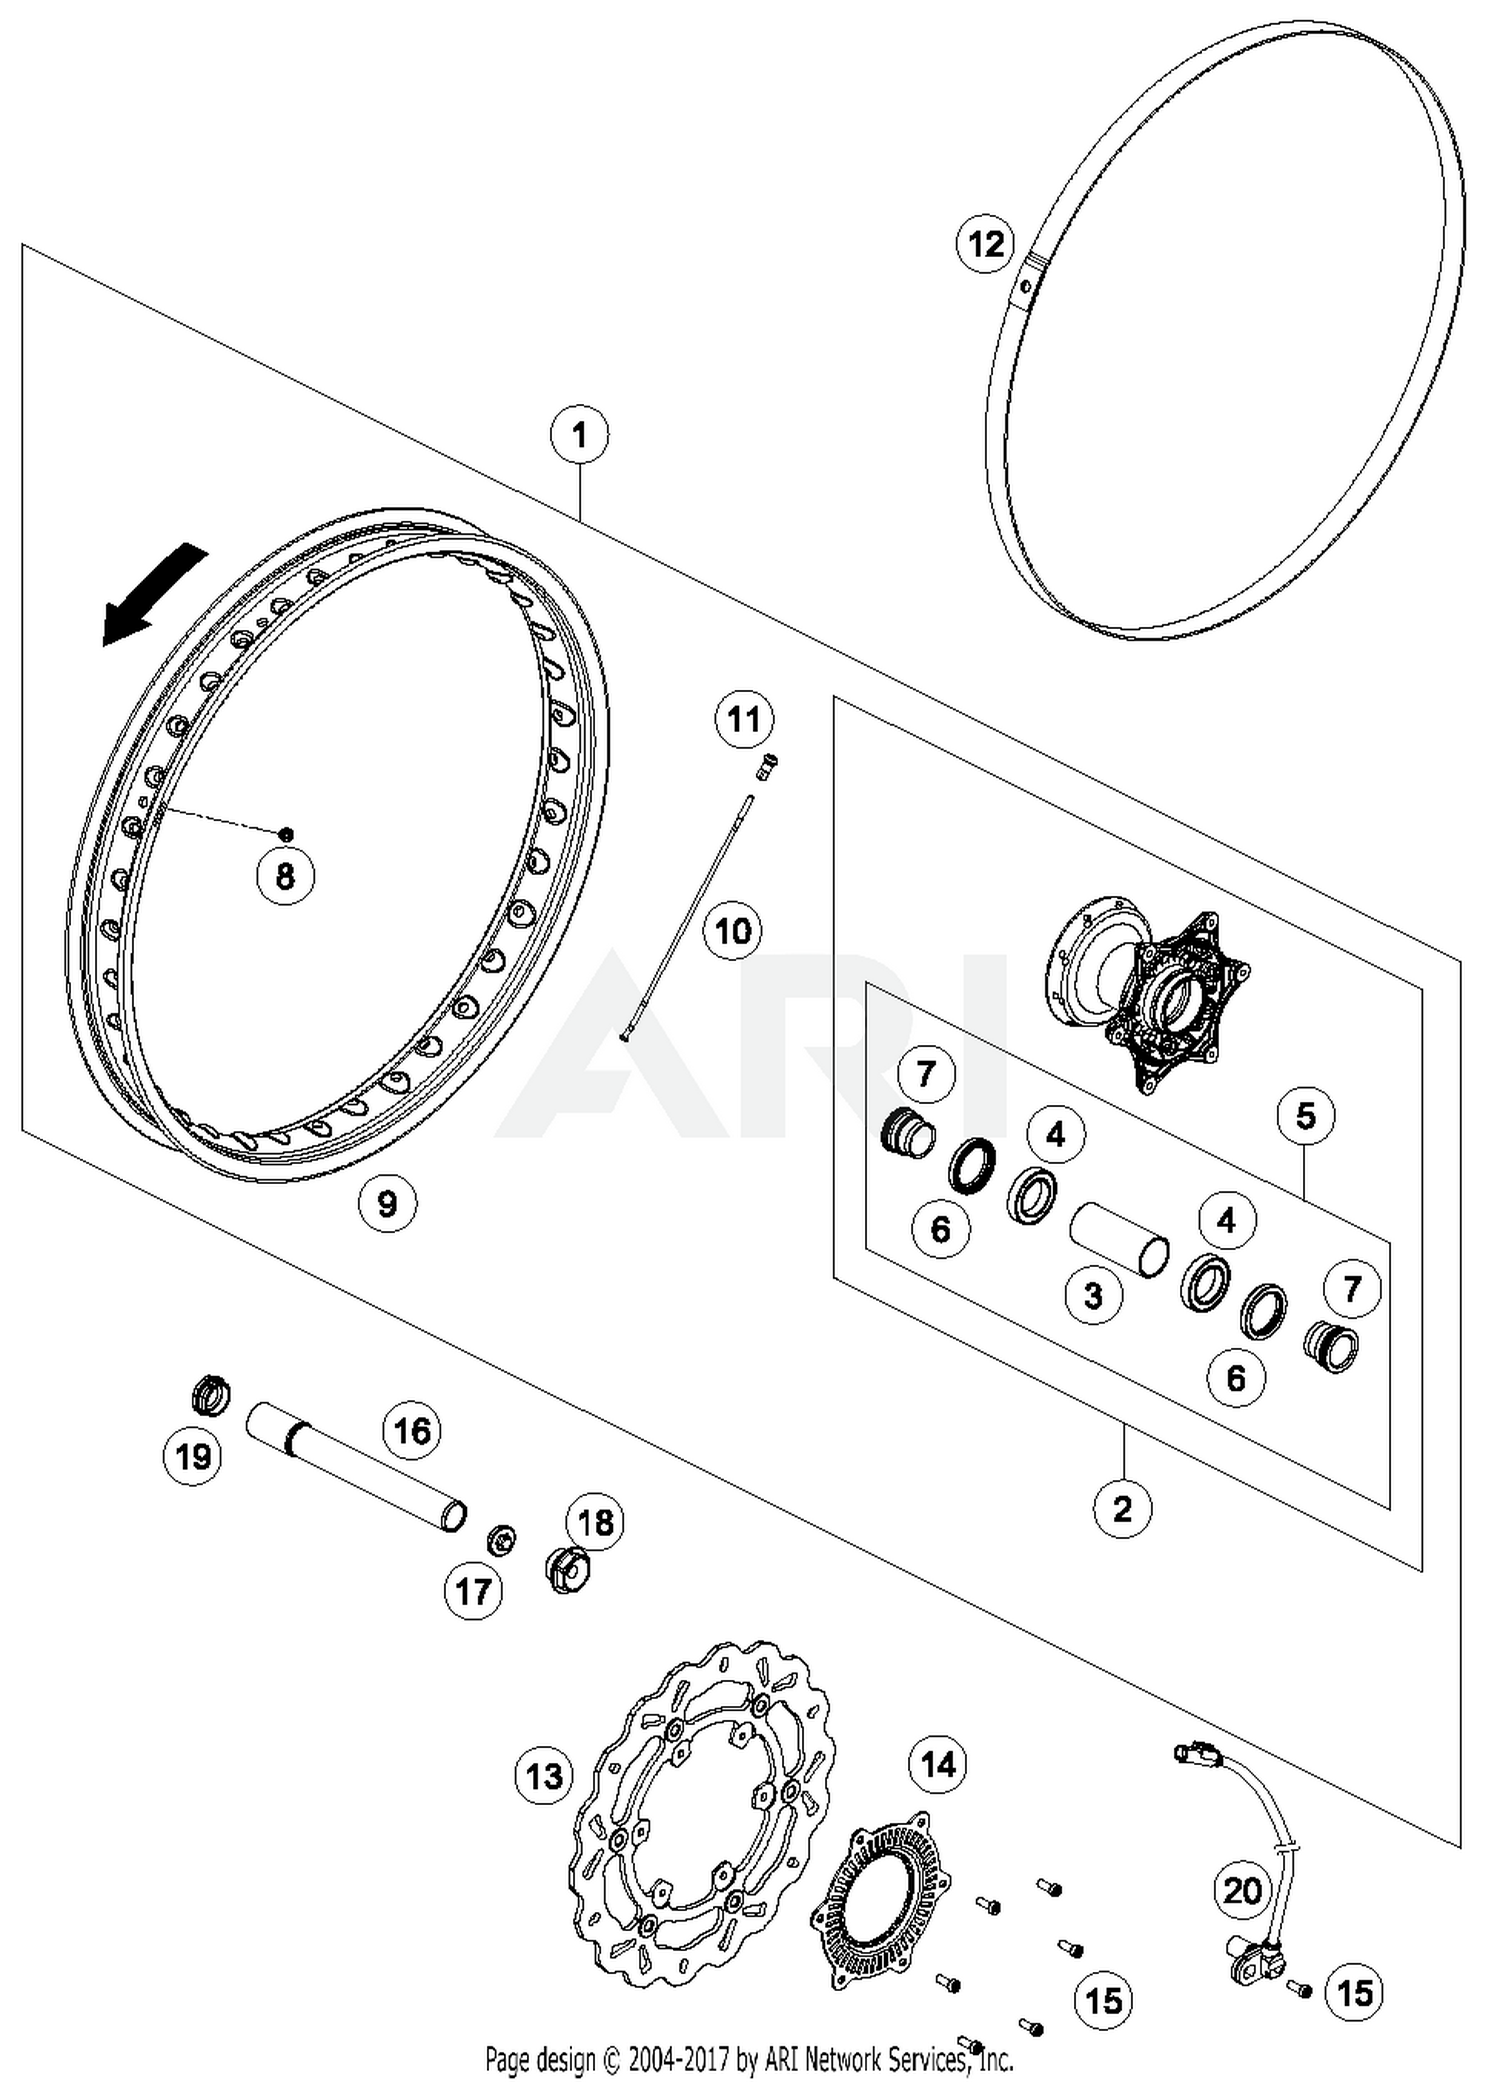 Ktm 54809081070 Best Price On Auxiliary Screw Front 06 Parts Wiring Diagram 2006 200 Exc Part 17 Quantity Required 1